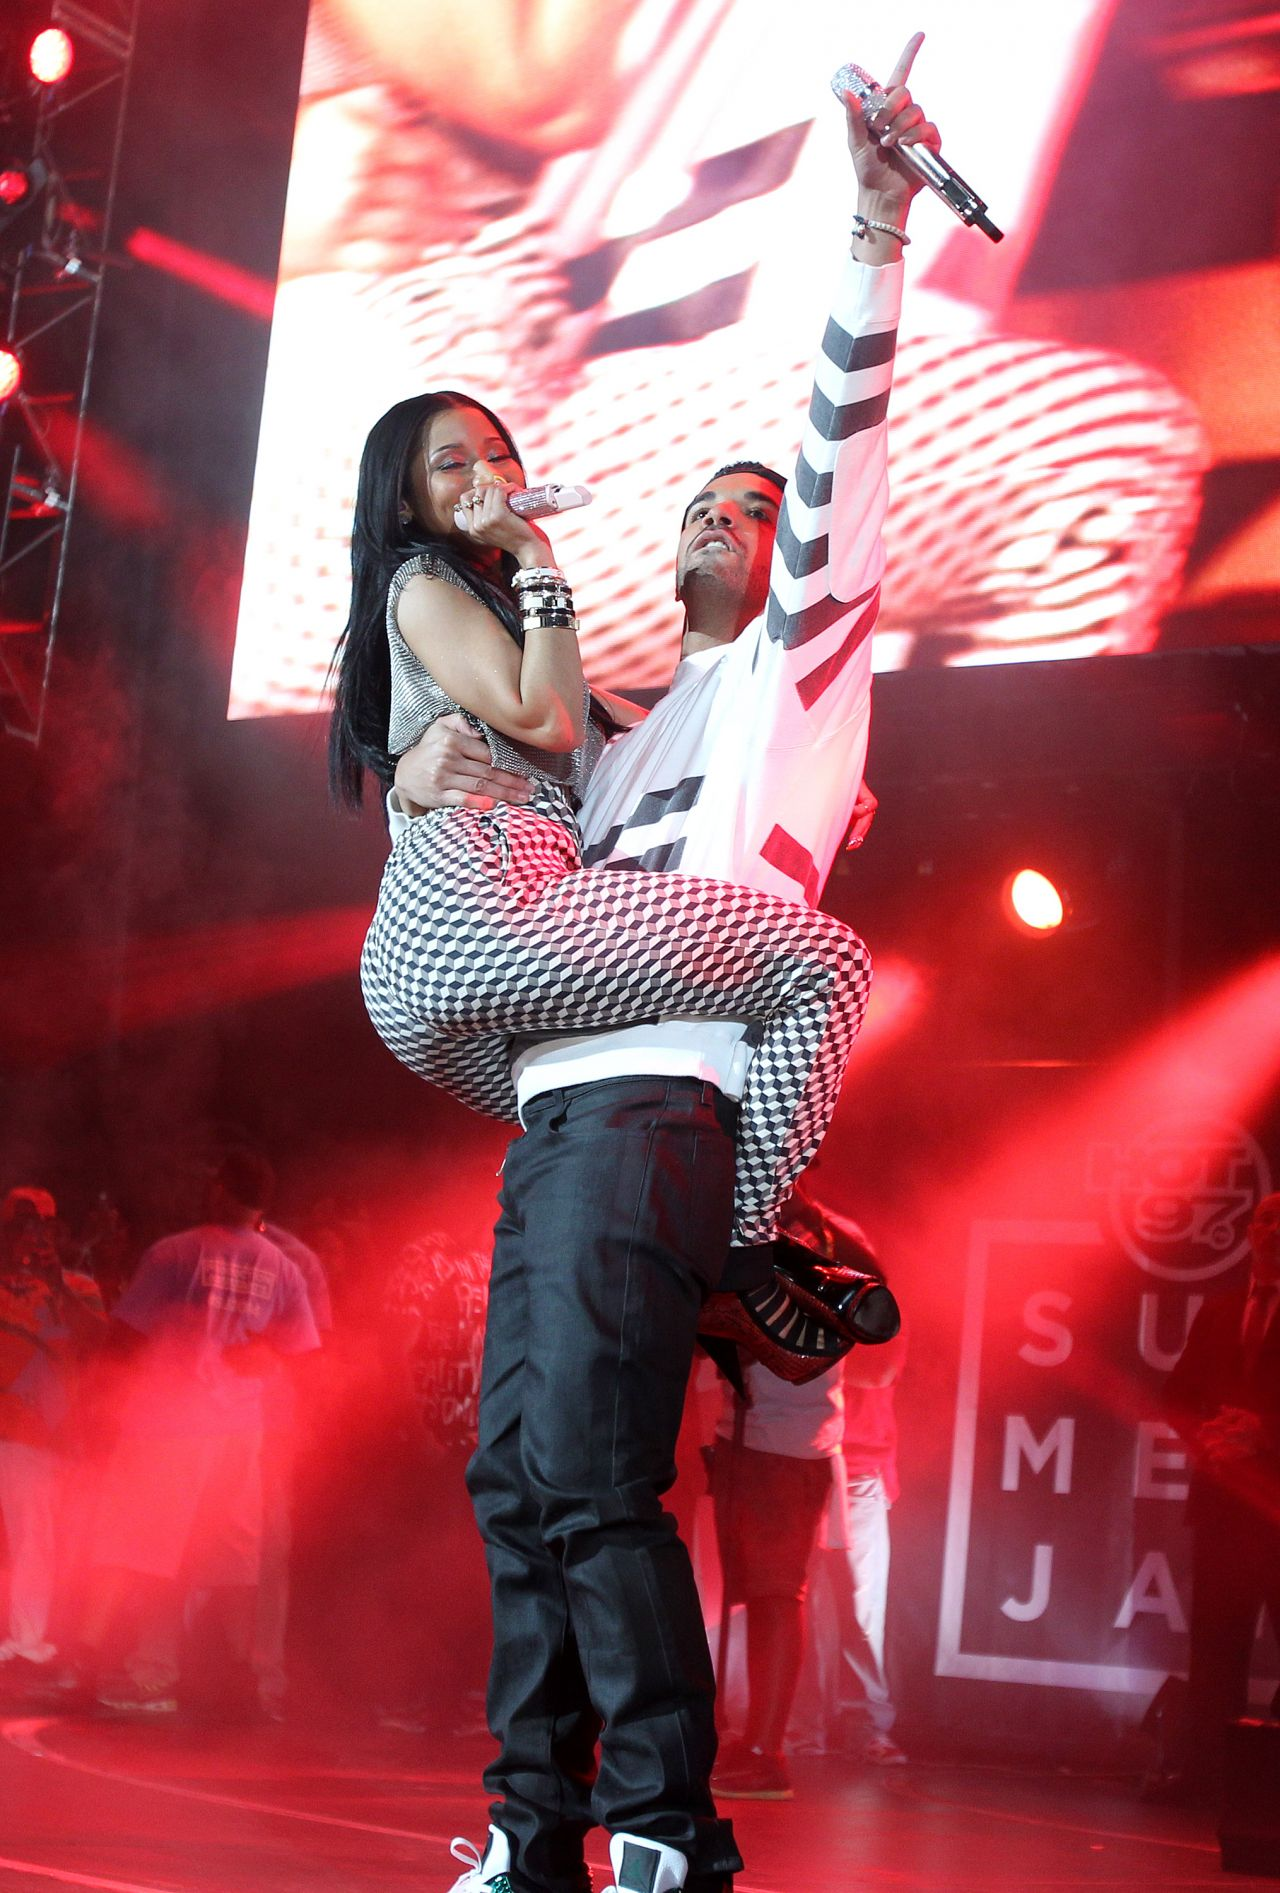 Nicki Minaj and Drake Performs at Hot 97 Summer Jam in New Jersey - June 2014